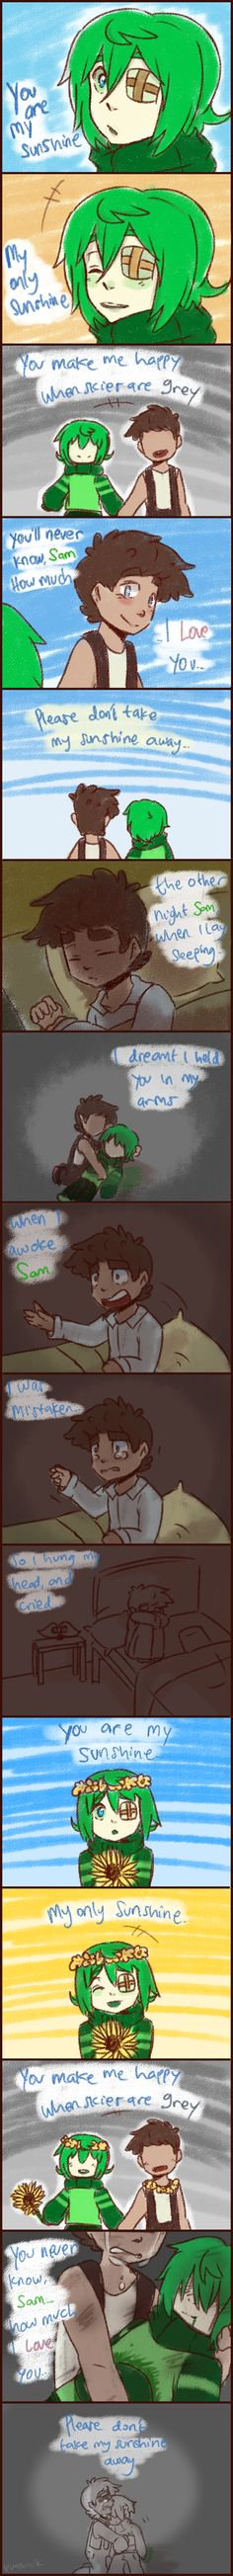 ~You are my Sunshine,Sam...~ Gahhh!!! The feels...( TДT) Septiceye Sam and Tiny box Tim!